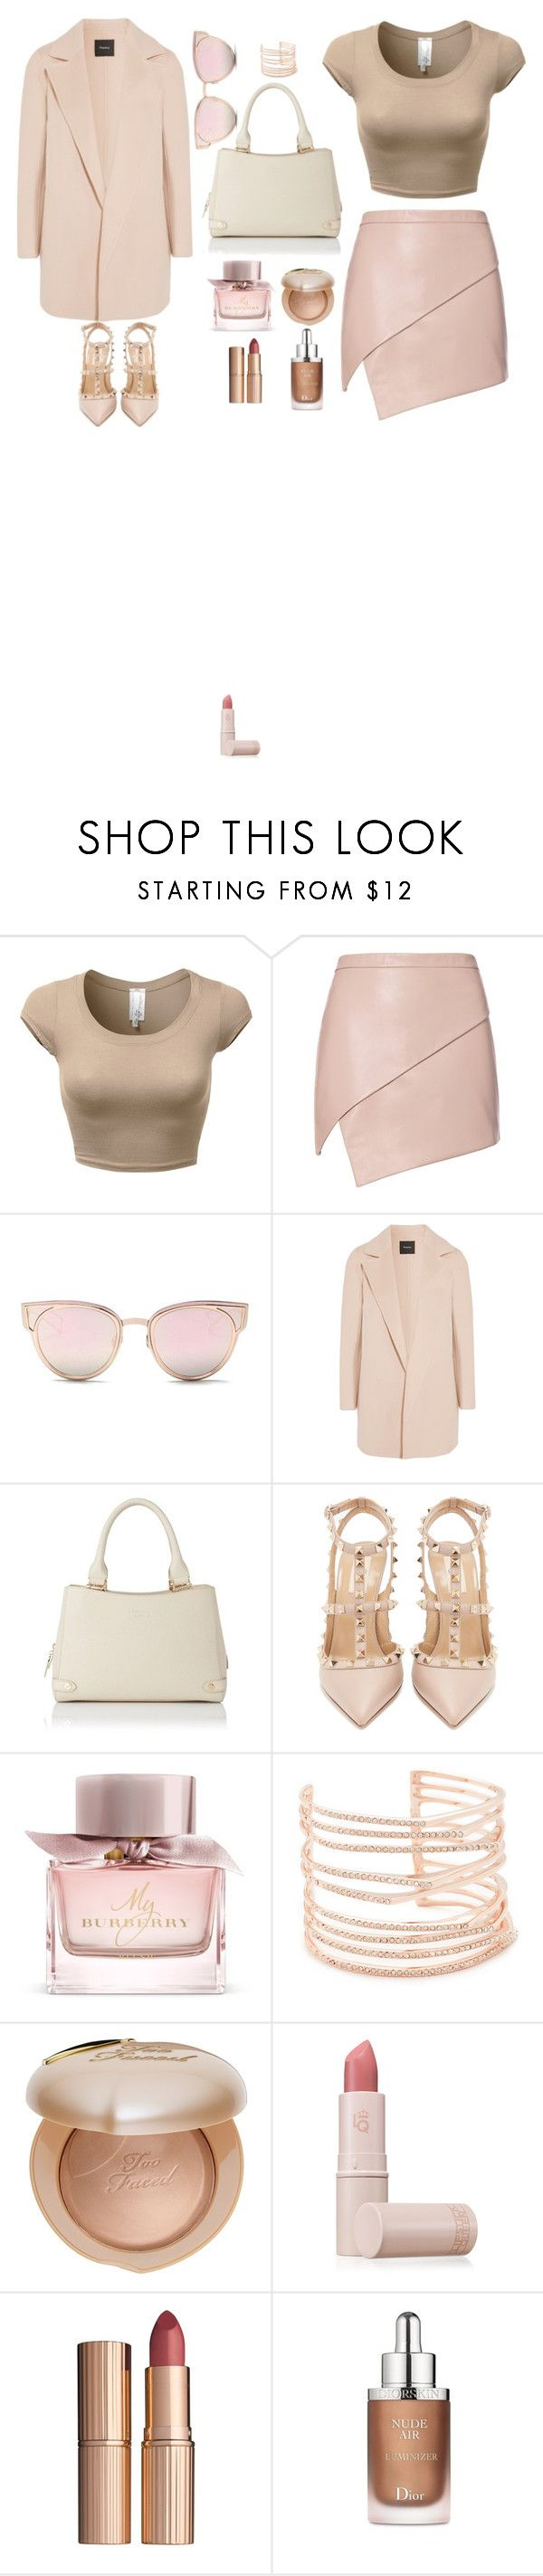 """""""Nude"""" by juliennevoka on Polyvore featuring mode, Michelle Mason, LMNT, Theory, L.K.Bennett, Valentino, Burberry, Alexis Bittar, Too Faced Cosmetics et Lipstick Queen"""